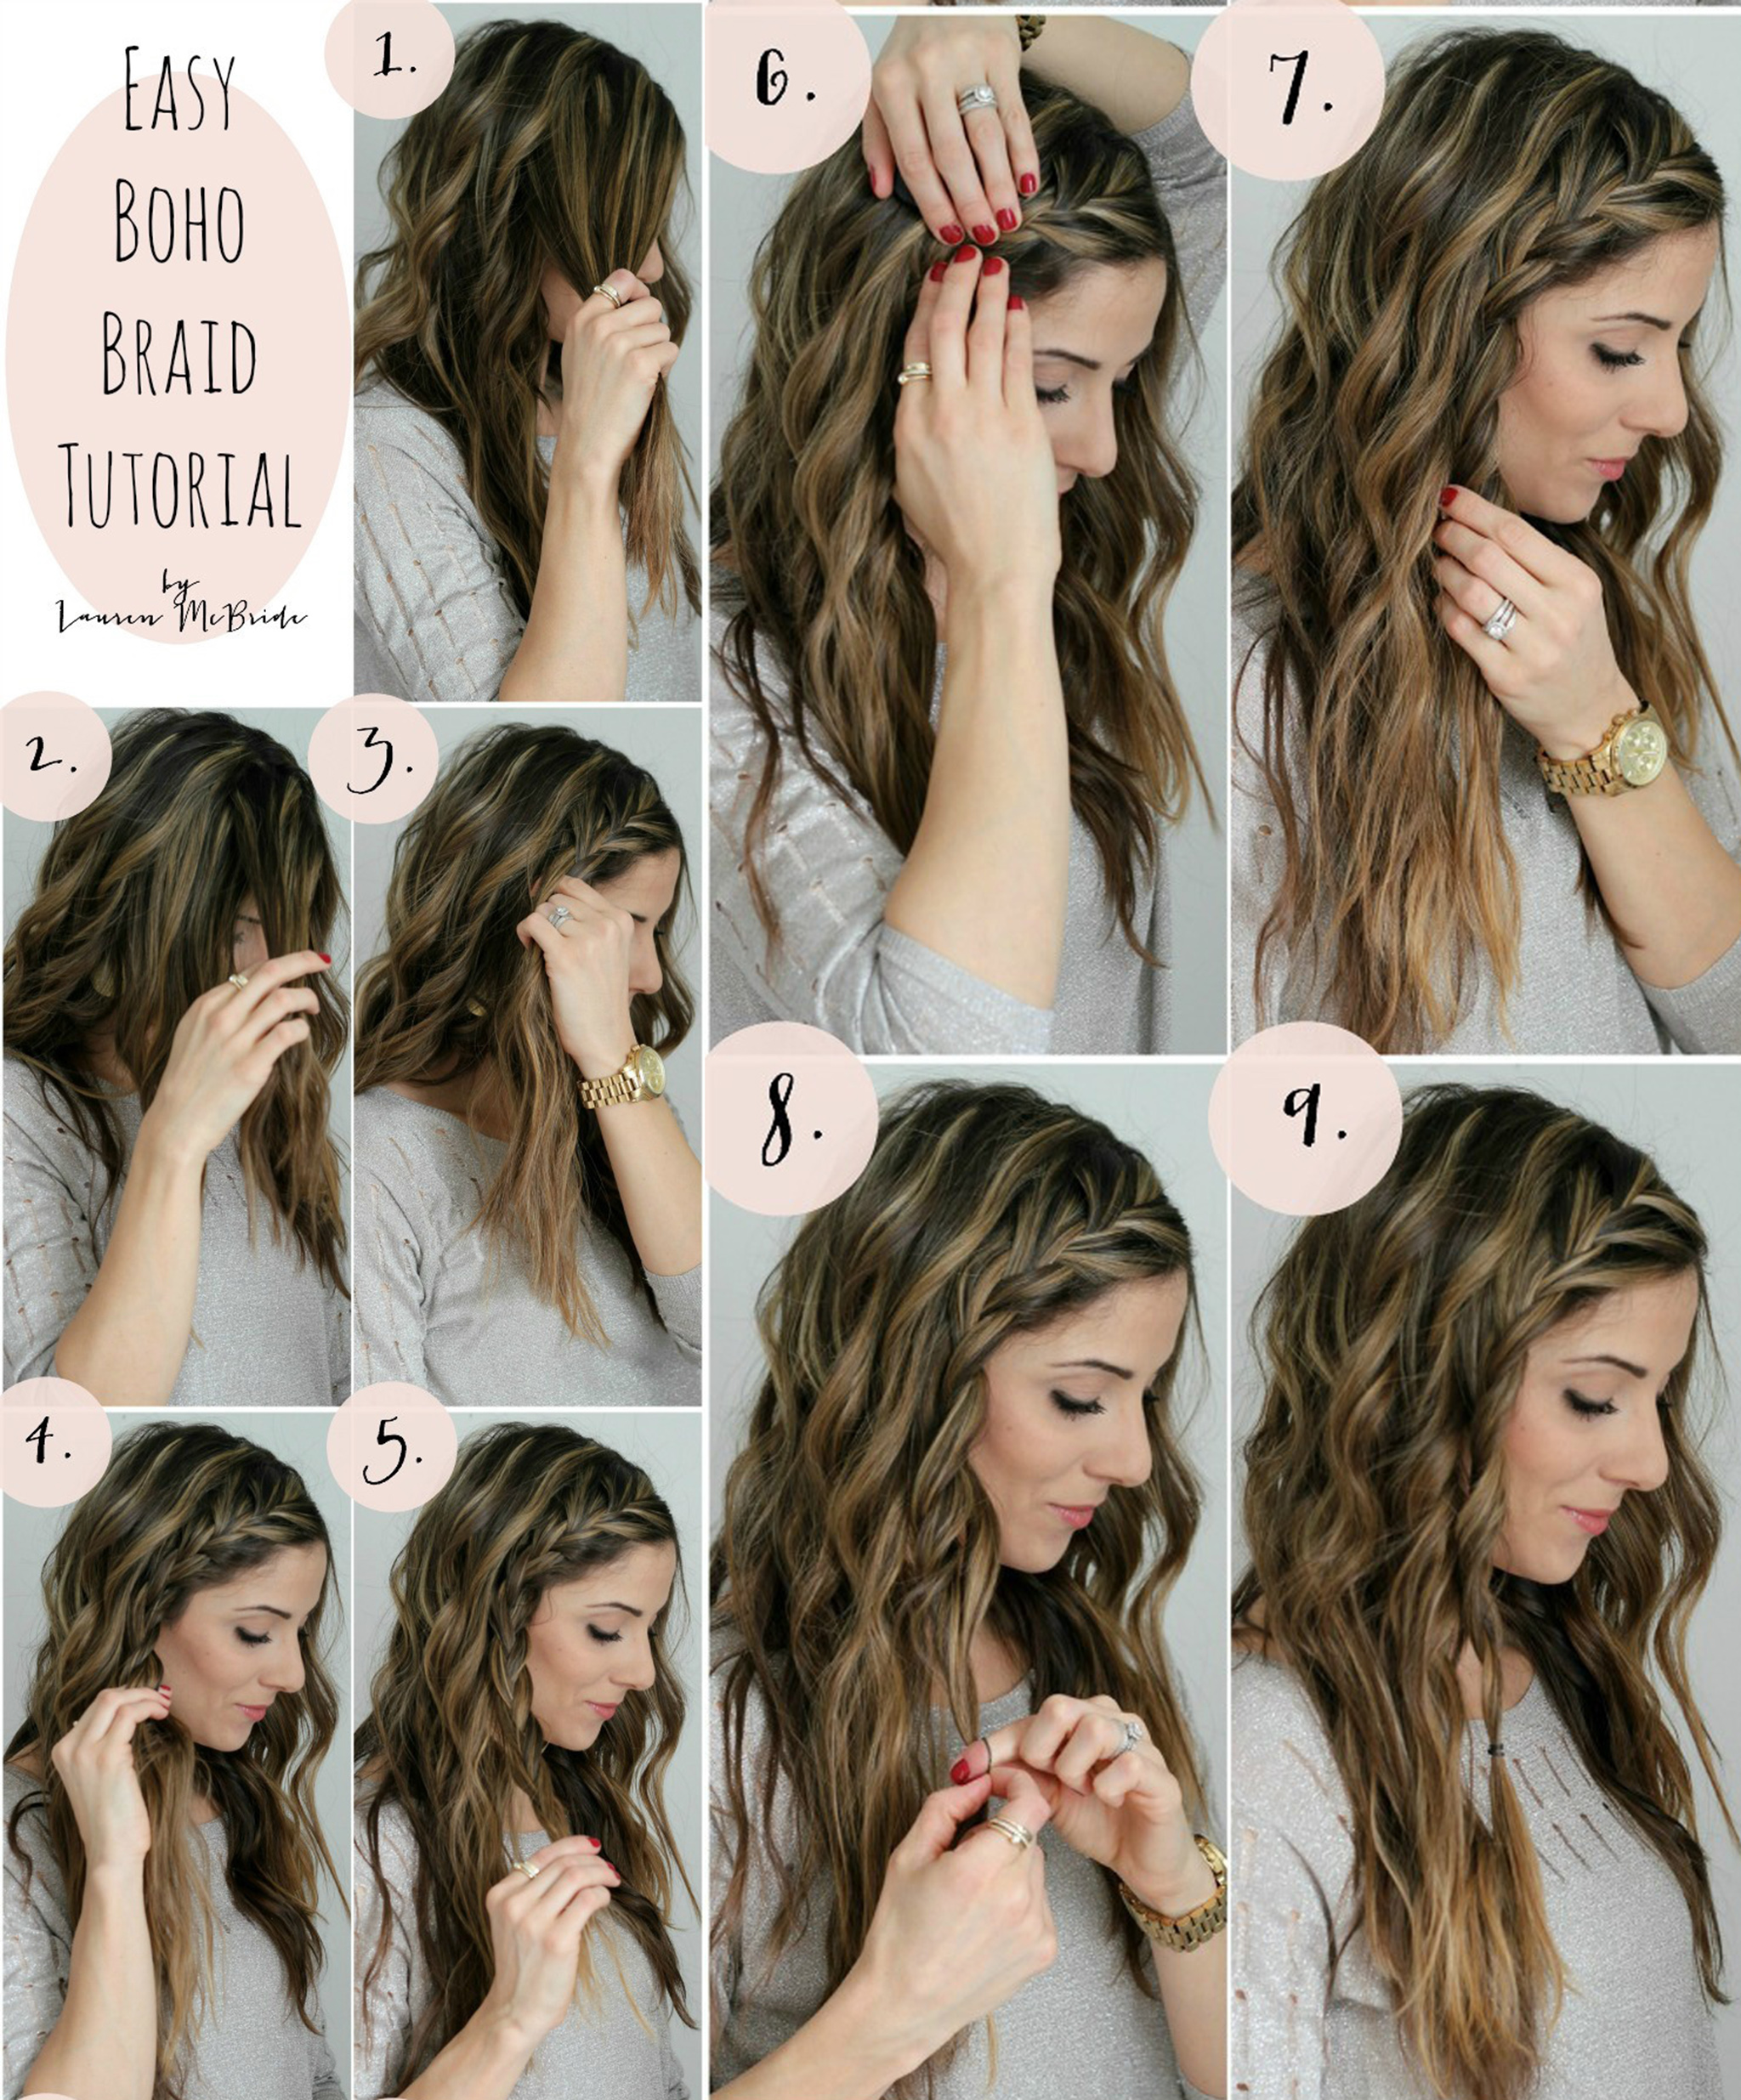 Top 10 Quick & Easy Braided Hairstyles Step By Step - Hairstyles Tutorials - Gymbuddy Now